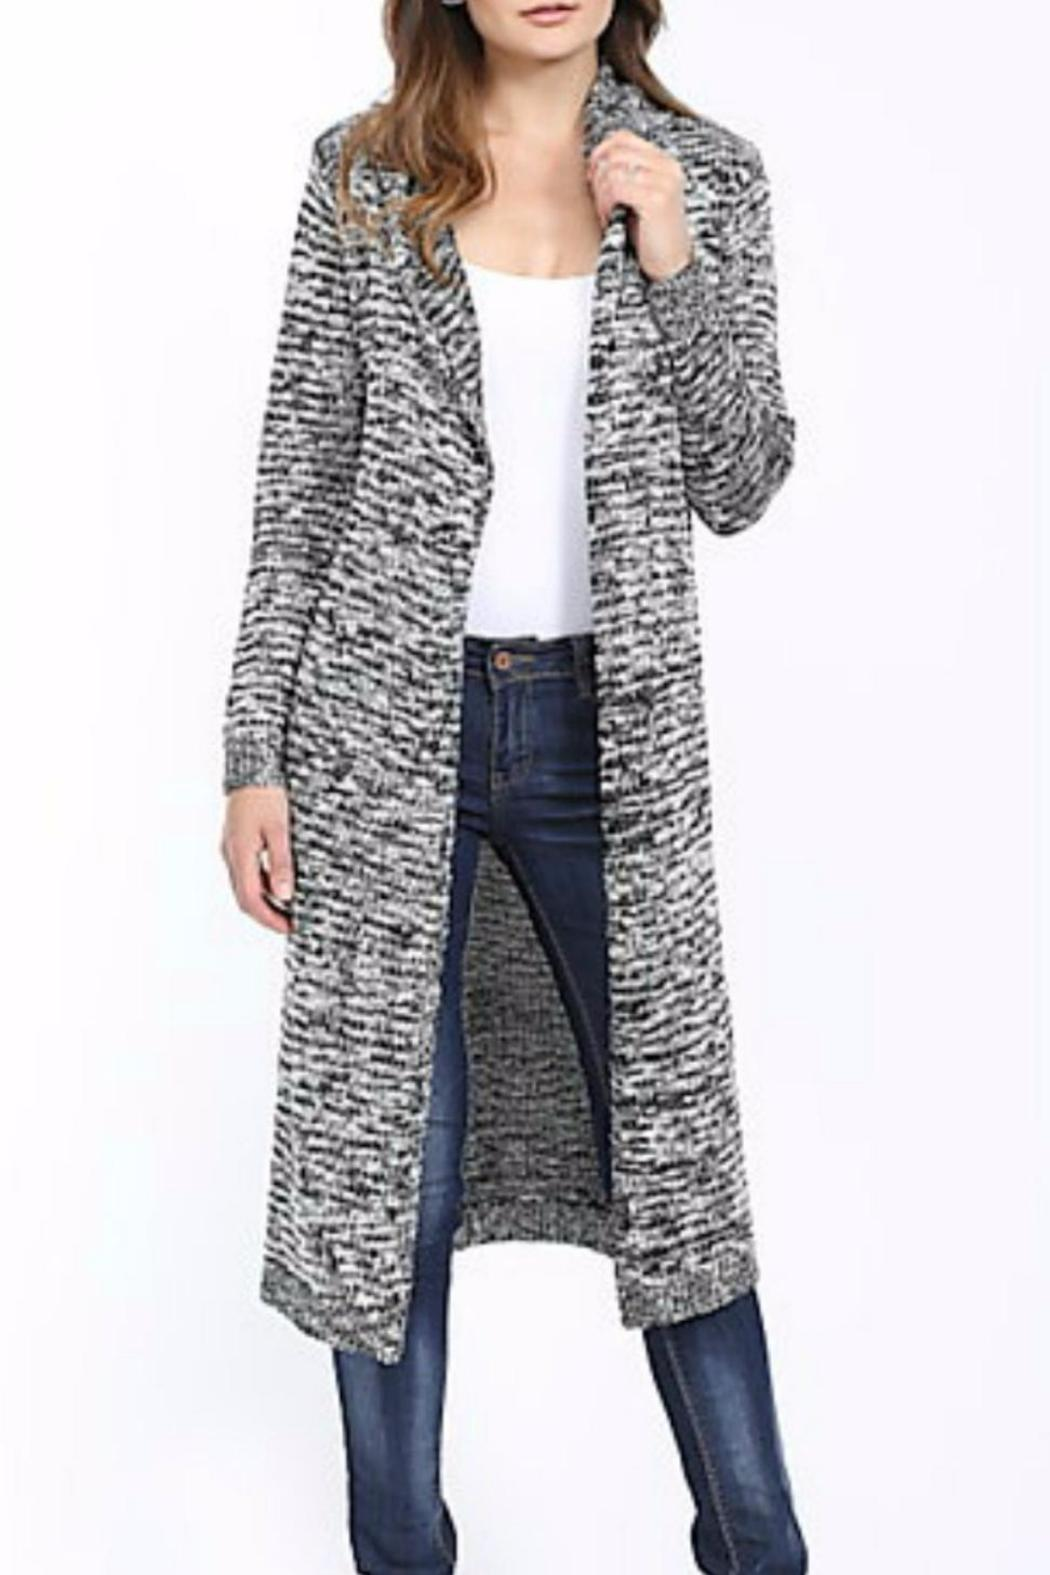 LOVE CULTURE Black/white Duster Cardigan from Tennessee by Cosmo ...